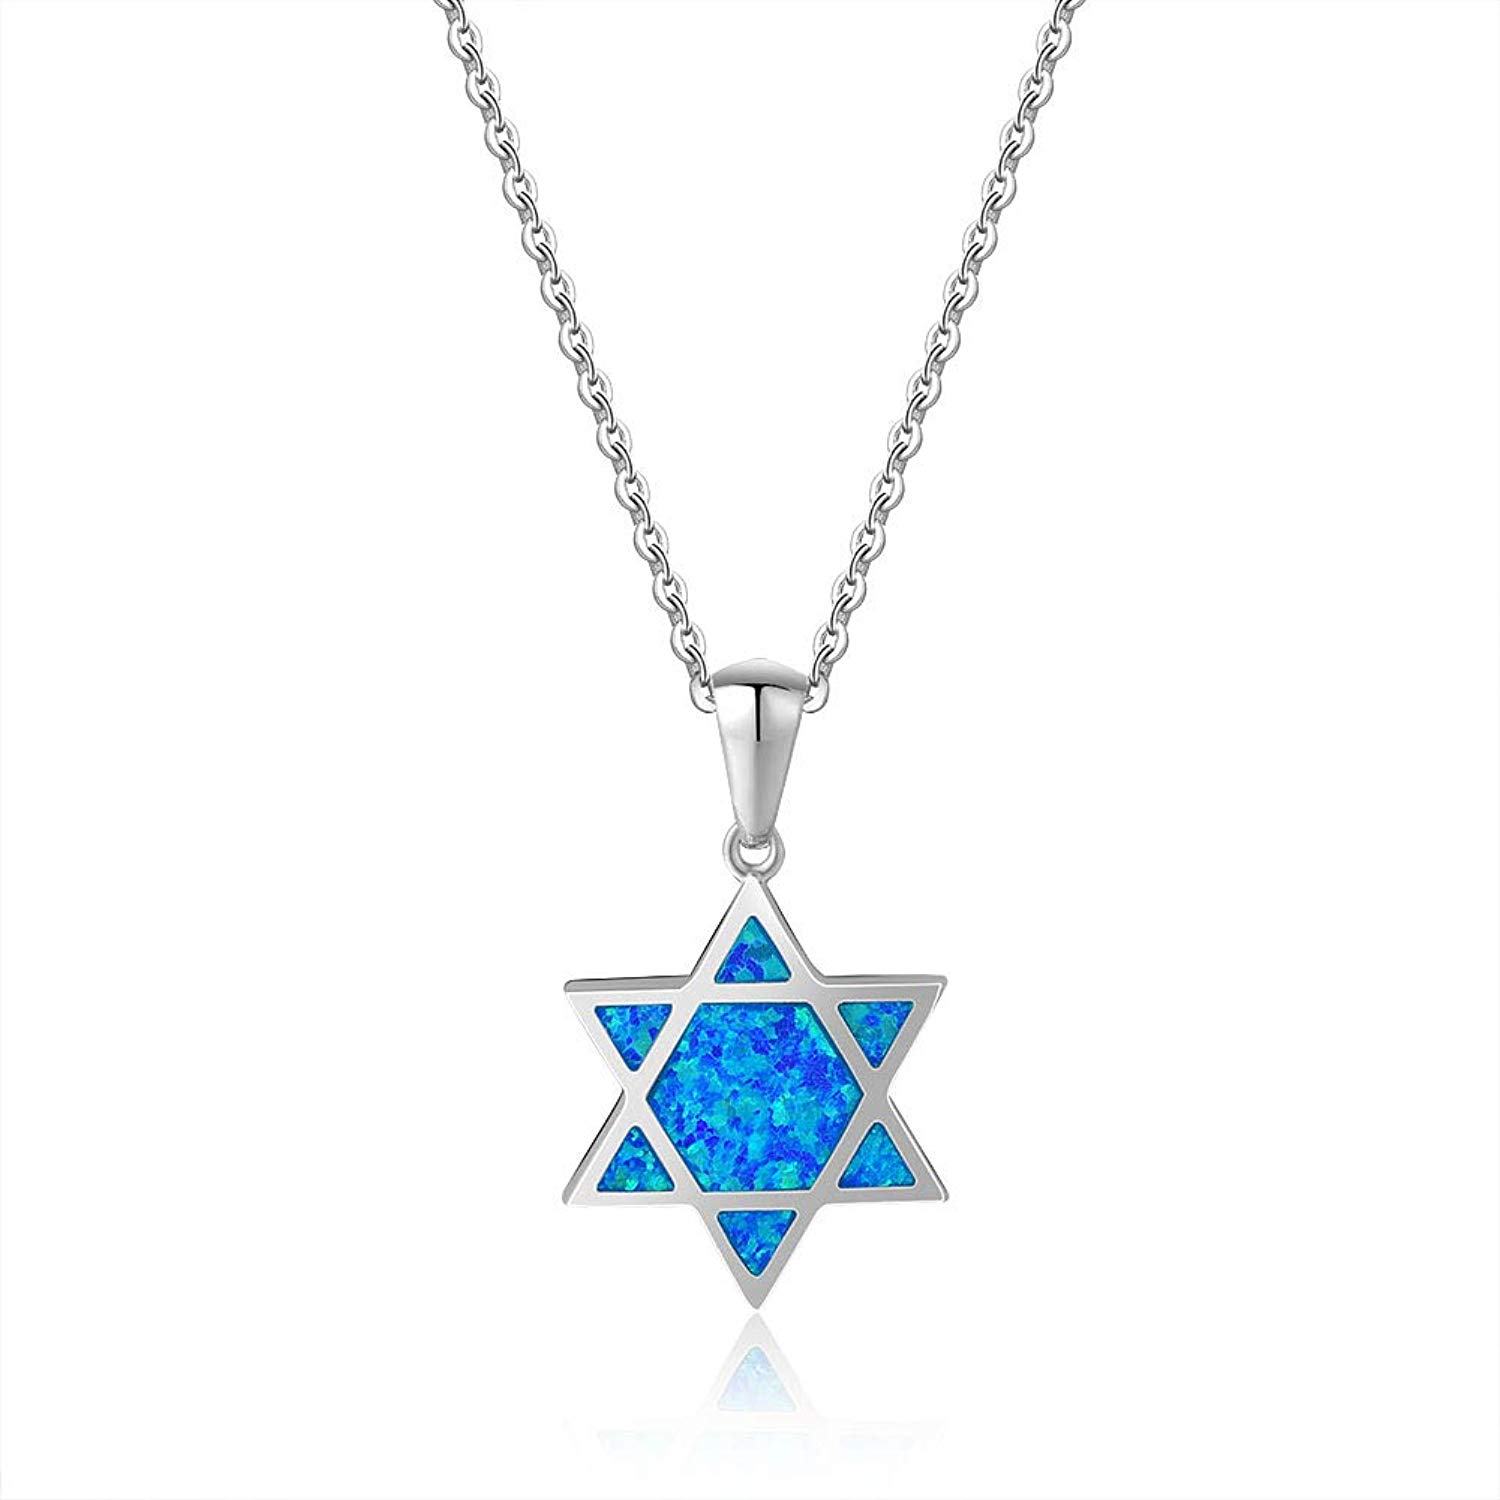 Fancime Created Opal Star of David Necklace 925 Sterling Silver Long Chain Charm Geometric Pendant Jewelry for Women Girls 18""